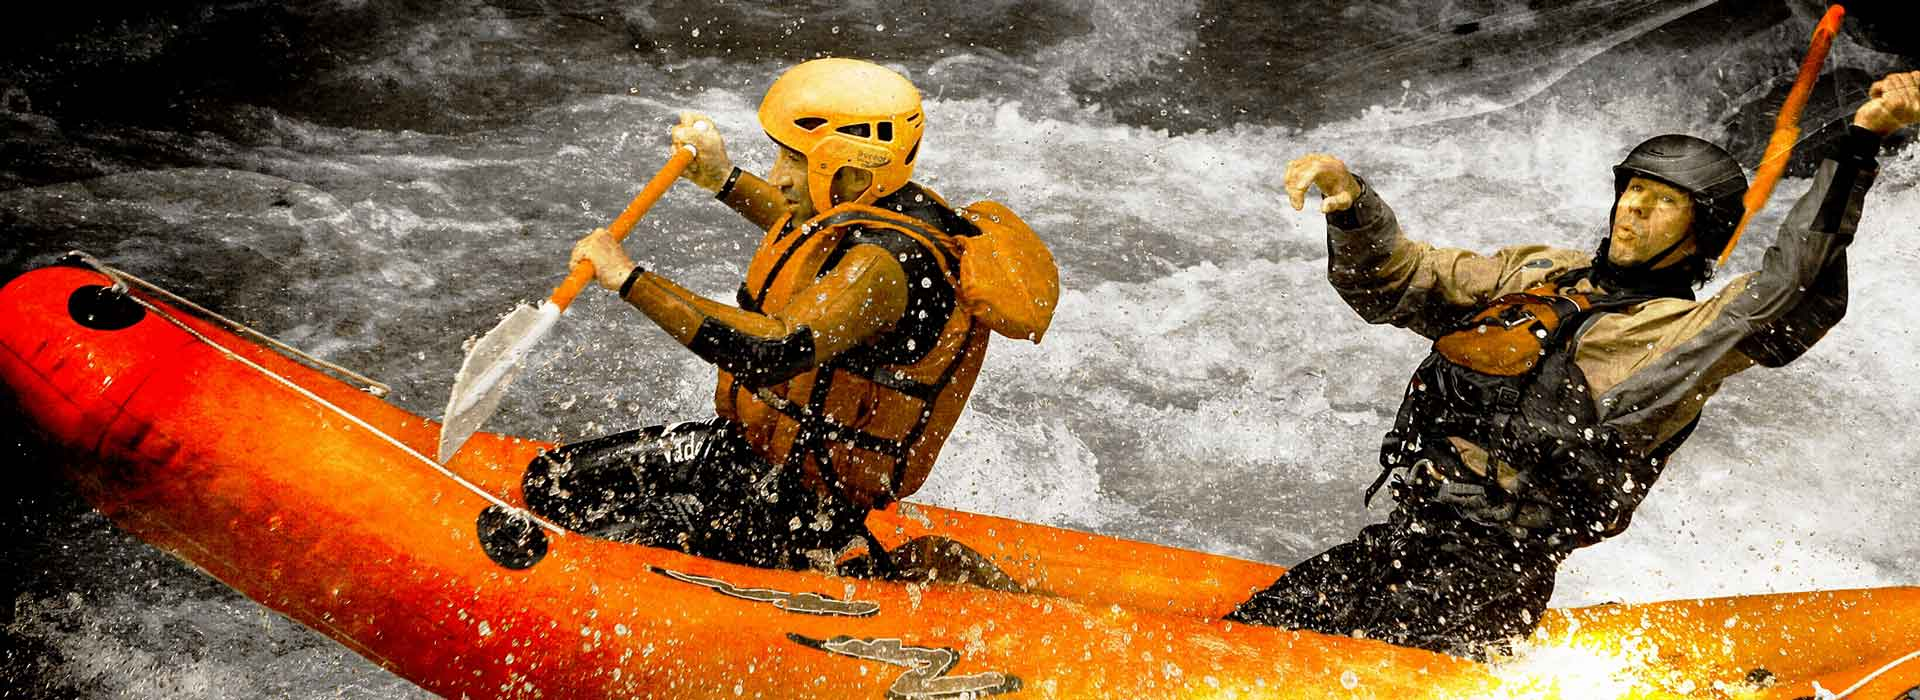 Savoie canoe-raft, white water base Bourg-Saint-Maurice